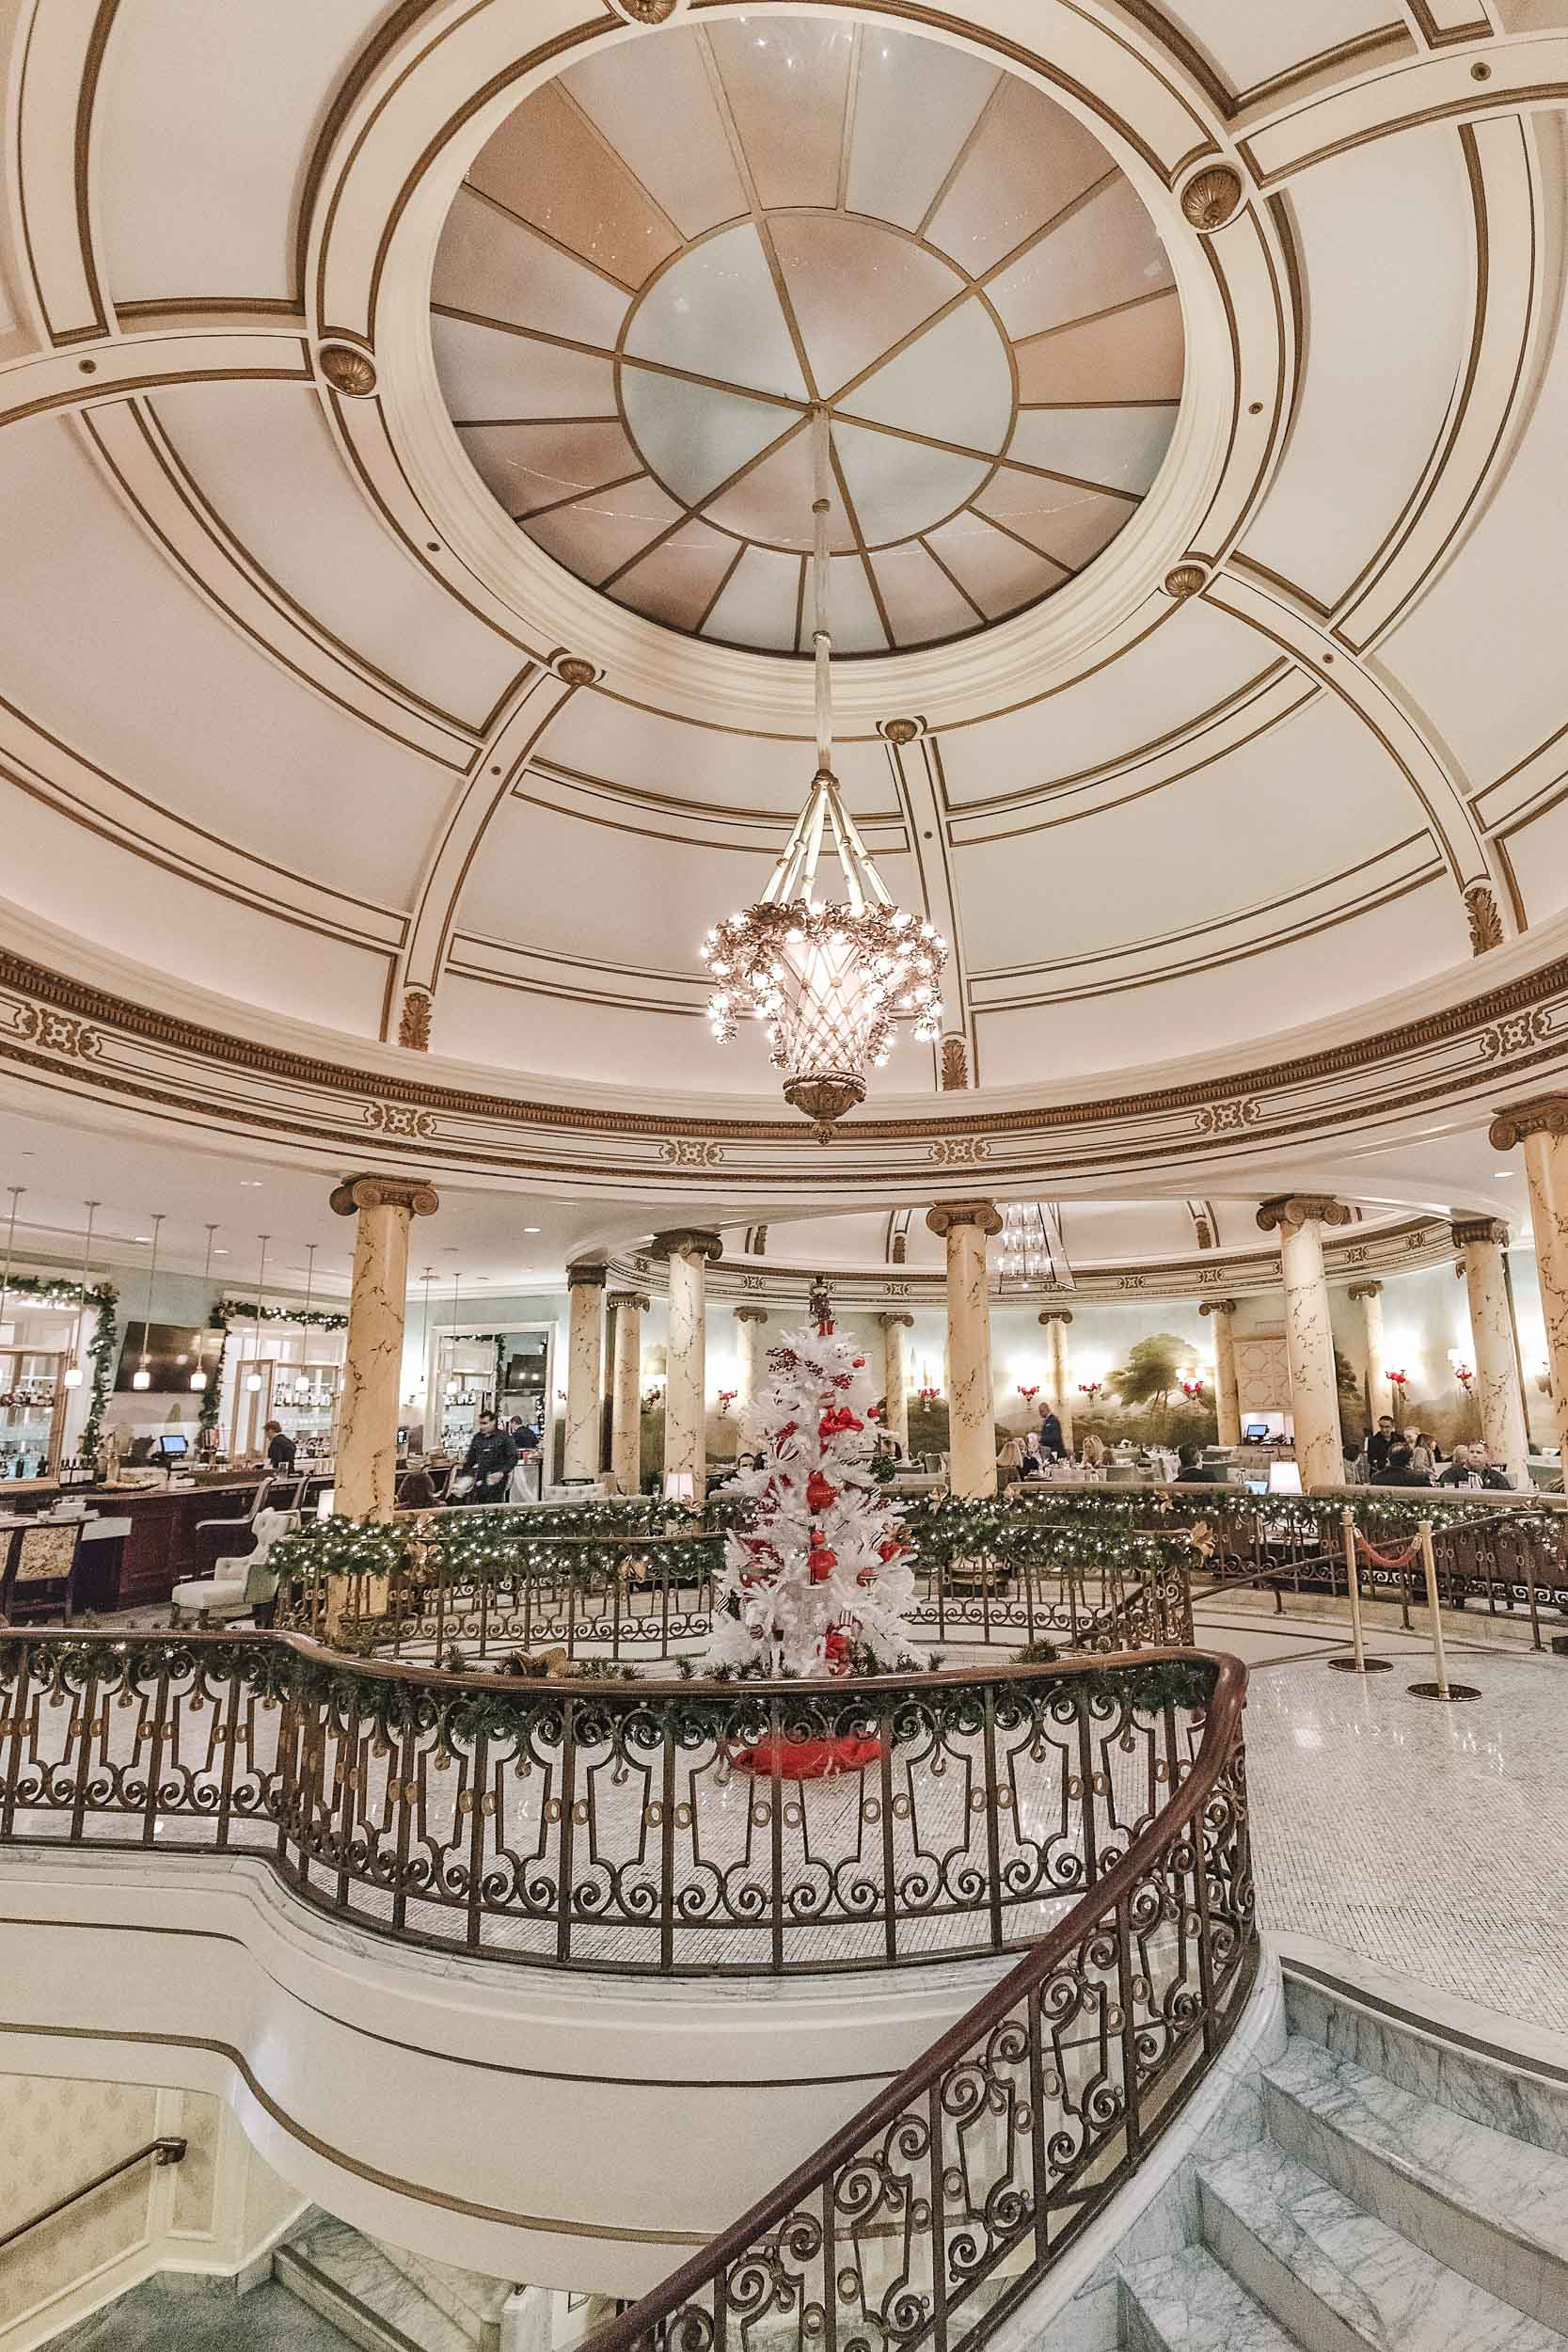 Laurel Court Restaurant & Bar at the Fairmont San Francisco offers afternoon tea year-round, but during the holidays there is a special holiday gingerbread tea!